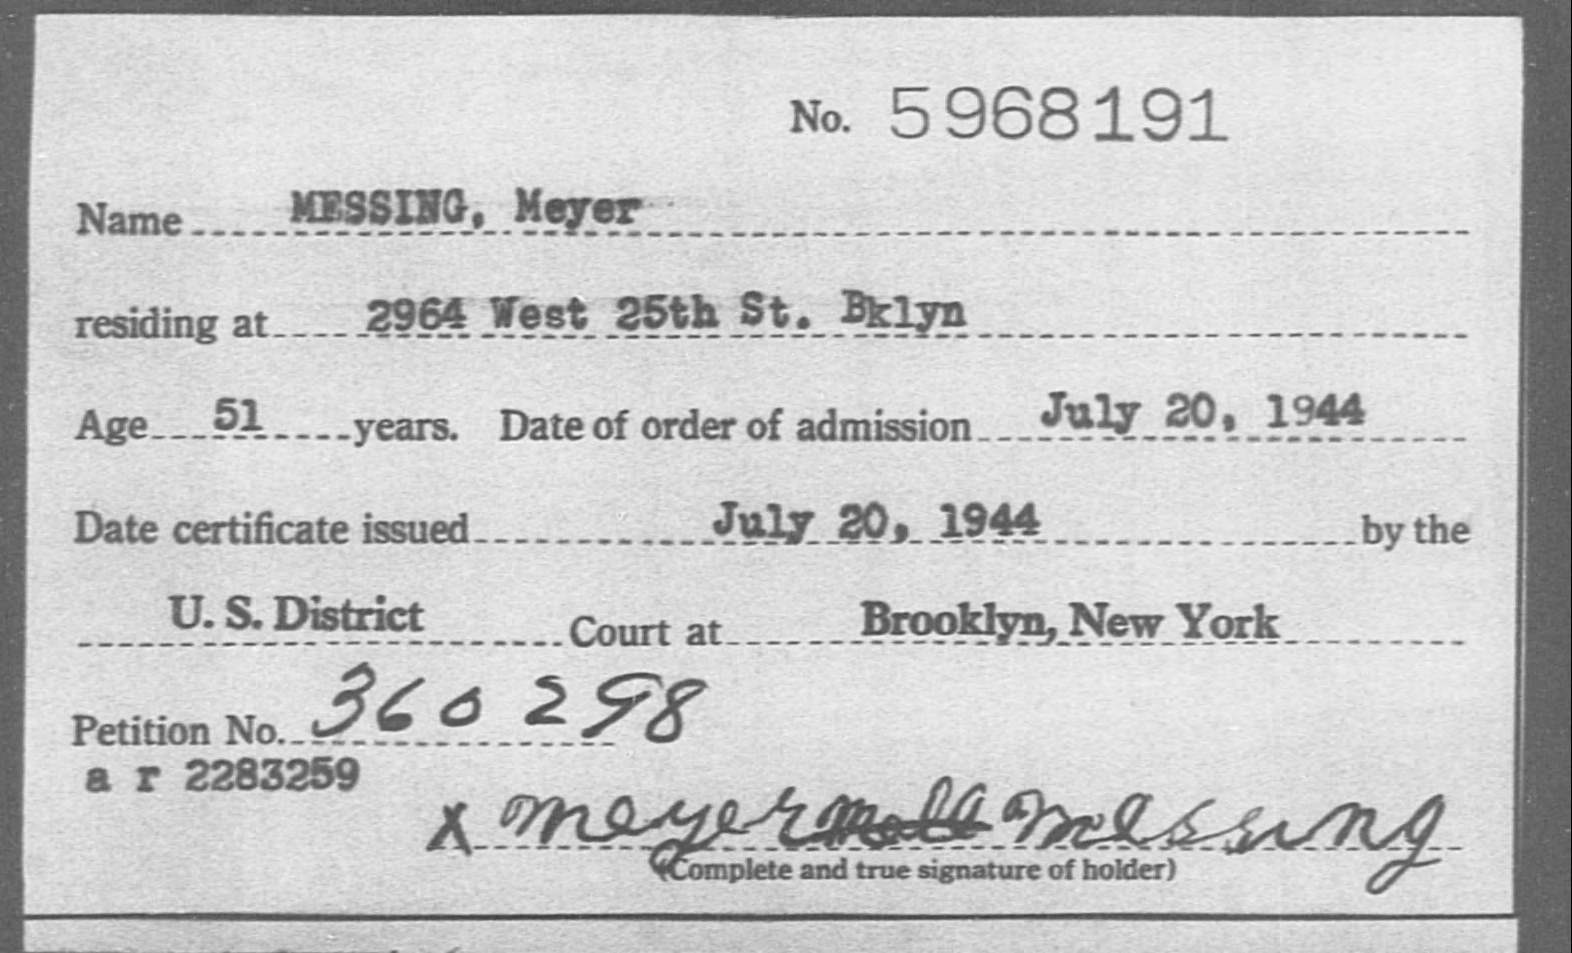 MESSING, Meyer - Born: [BLANK], Naturalized: 1944